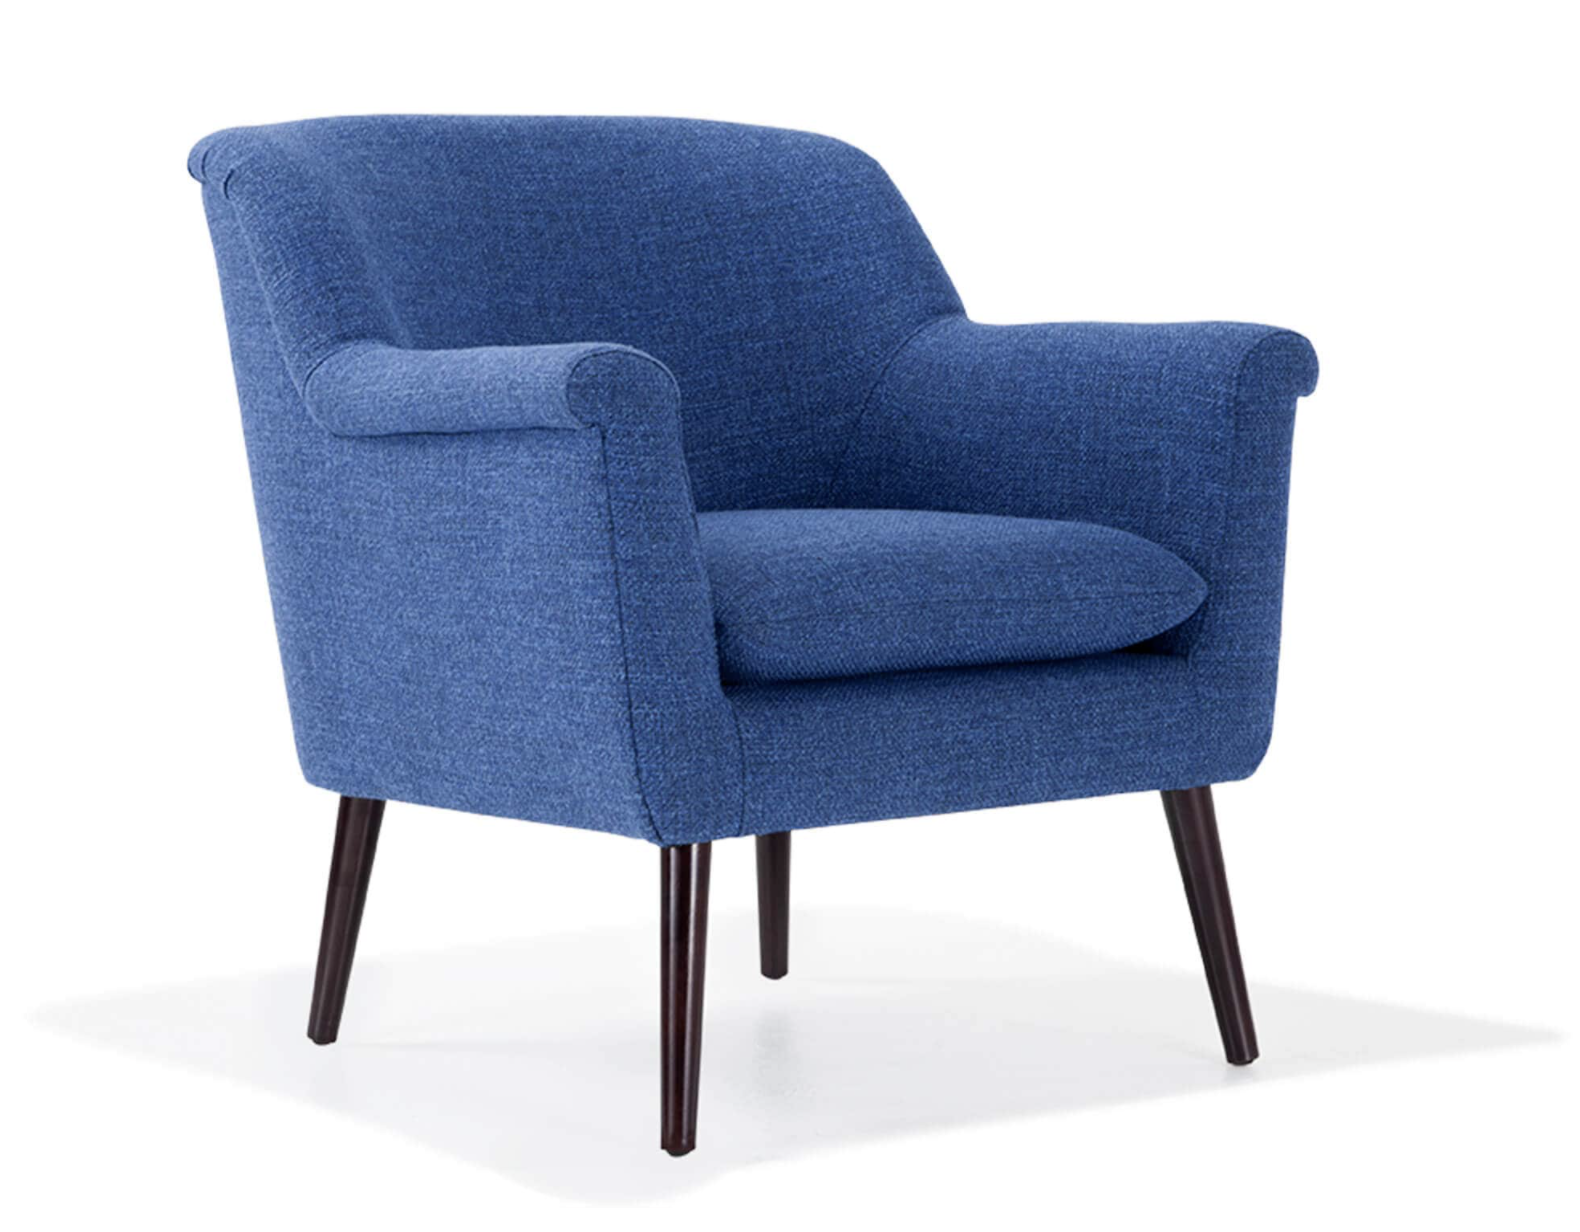 the royal blue reece accent chair